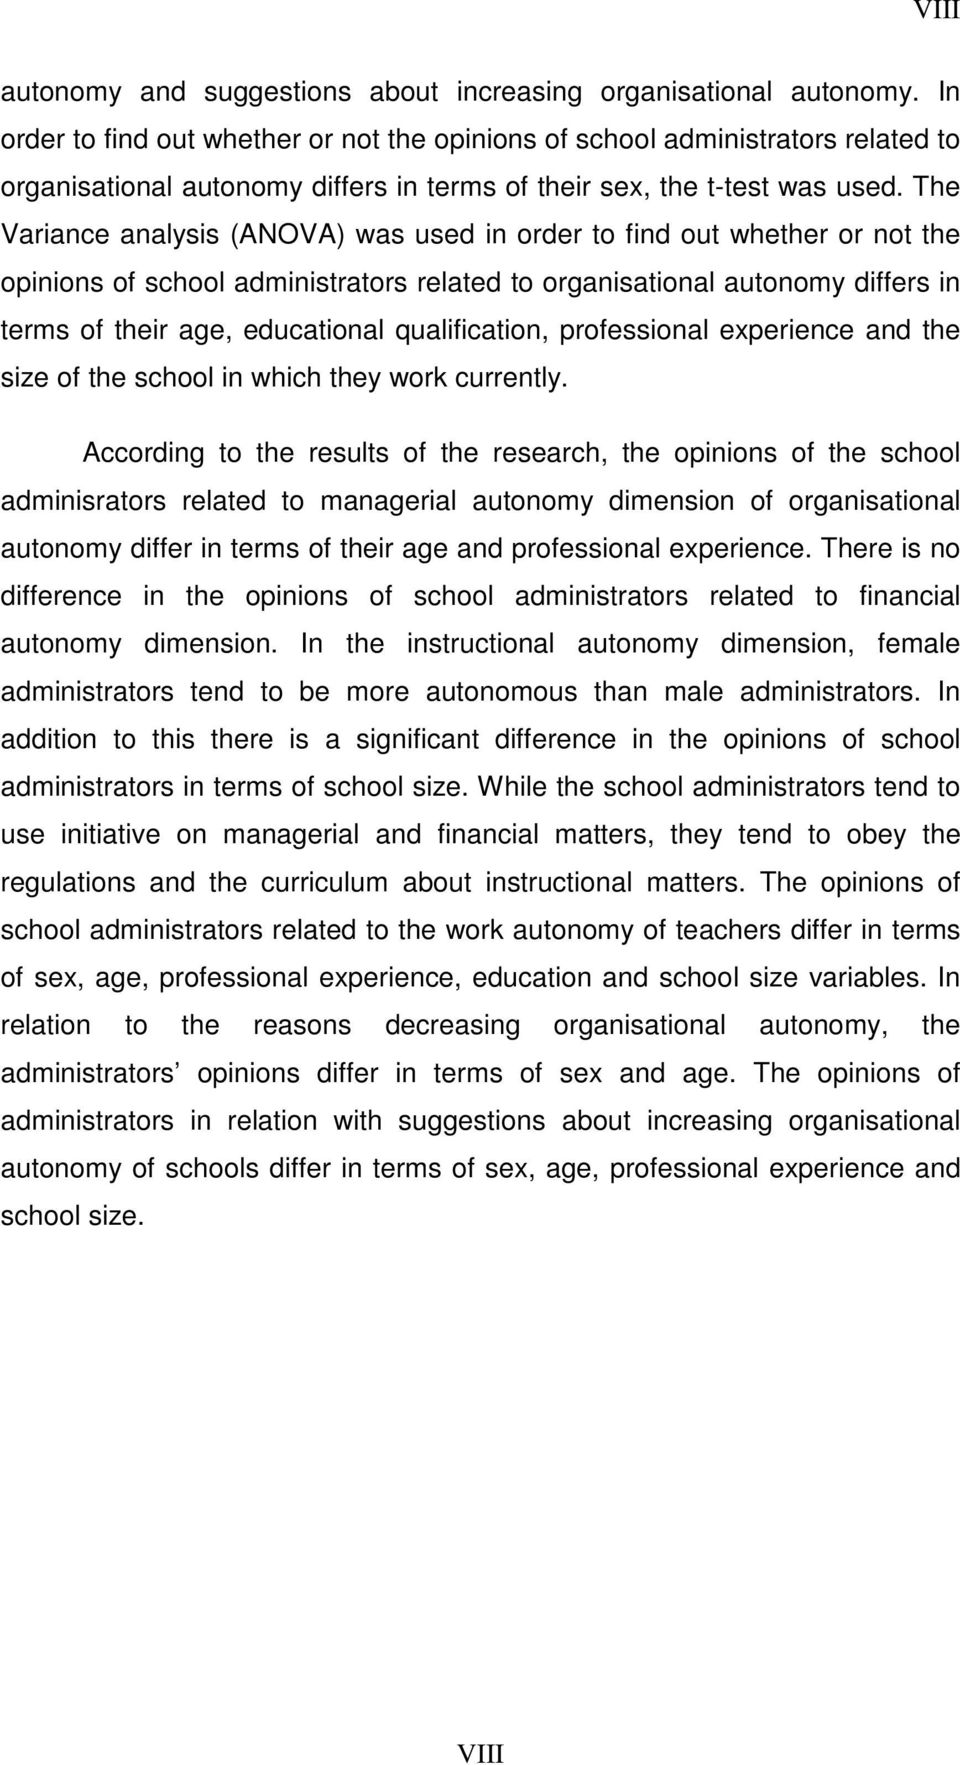 The Variance analysis (ANOVA) was used in order to find out whether or not the opinions of school administrators related to organisational autonomy differs in terms of their age, educational